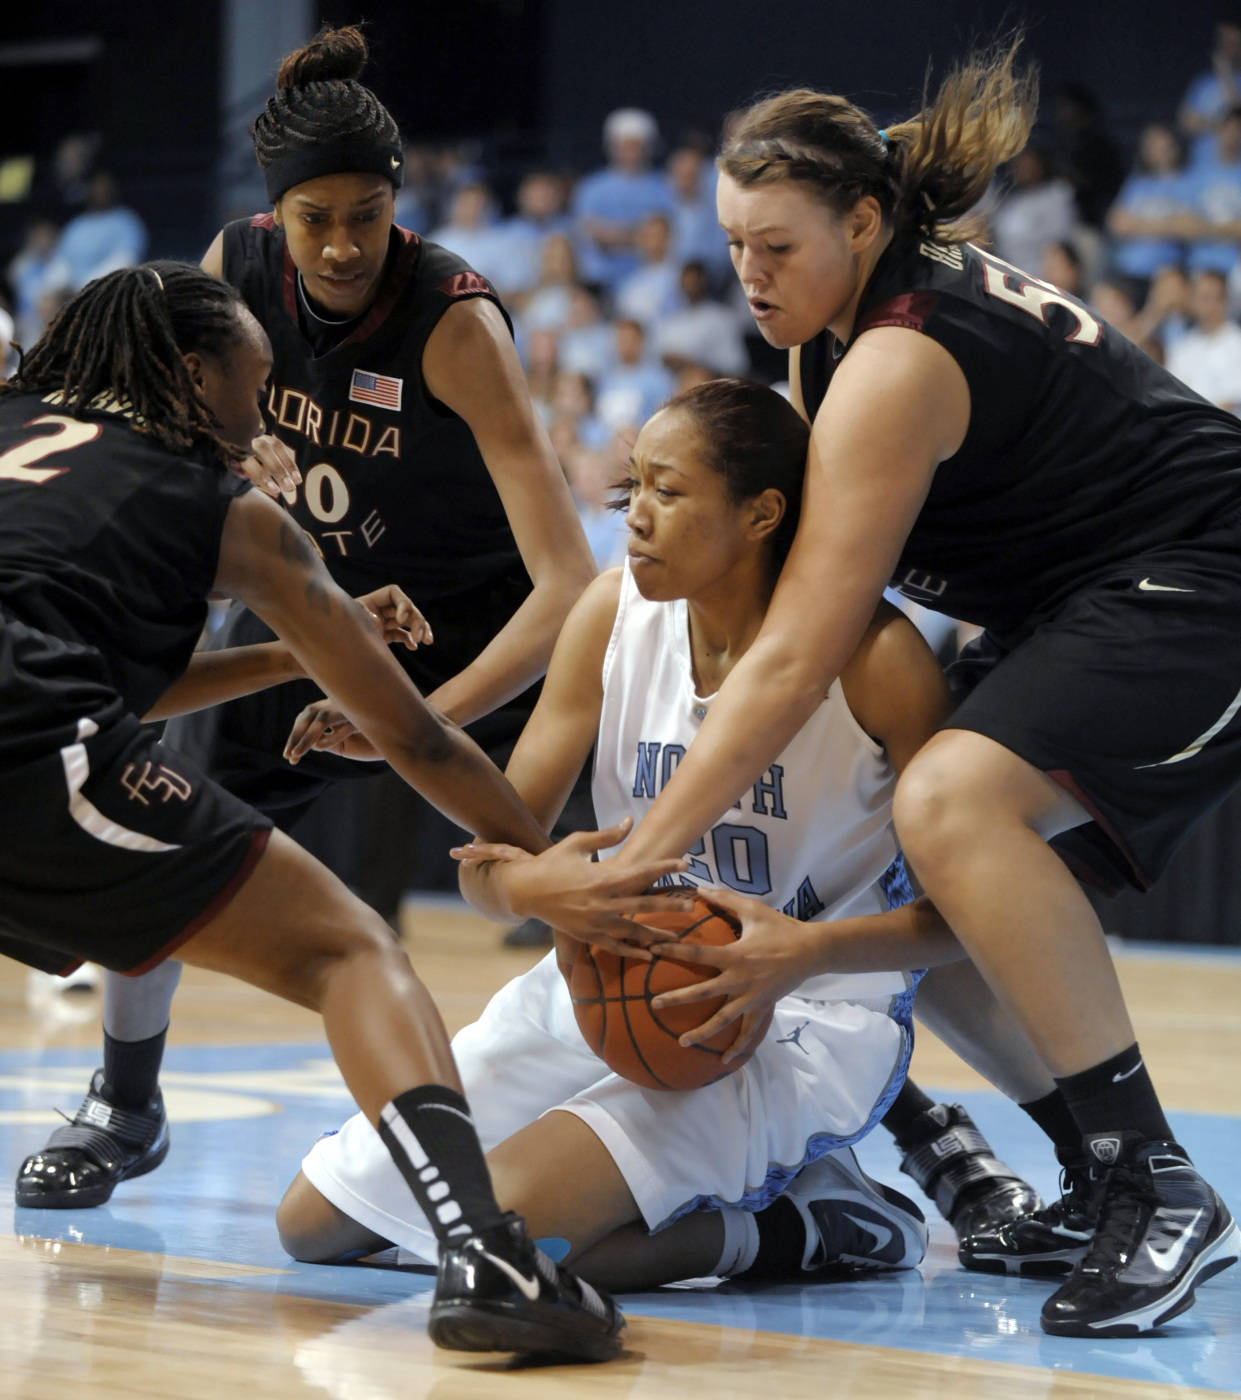 North Carolina's Chay Shegog, center, battles to keep the ball from Florida State's Alysha Harvin (2), Jacinta Monroe, left rear, and Cierra Bravard, right, during the first half an NCAA college basketball game in Durham, N.C., Monday, Feb. 1, 2010. (AP Photo/Sara D. Davis)